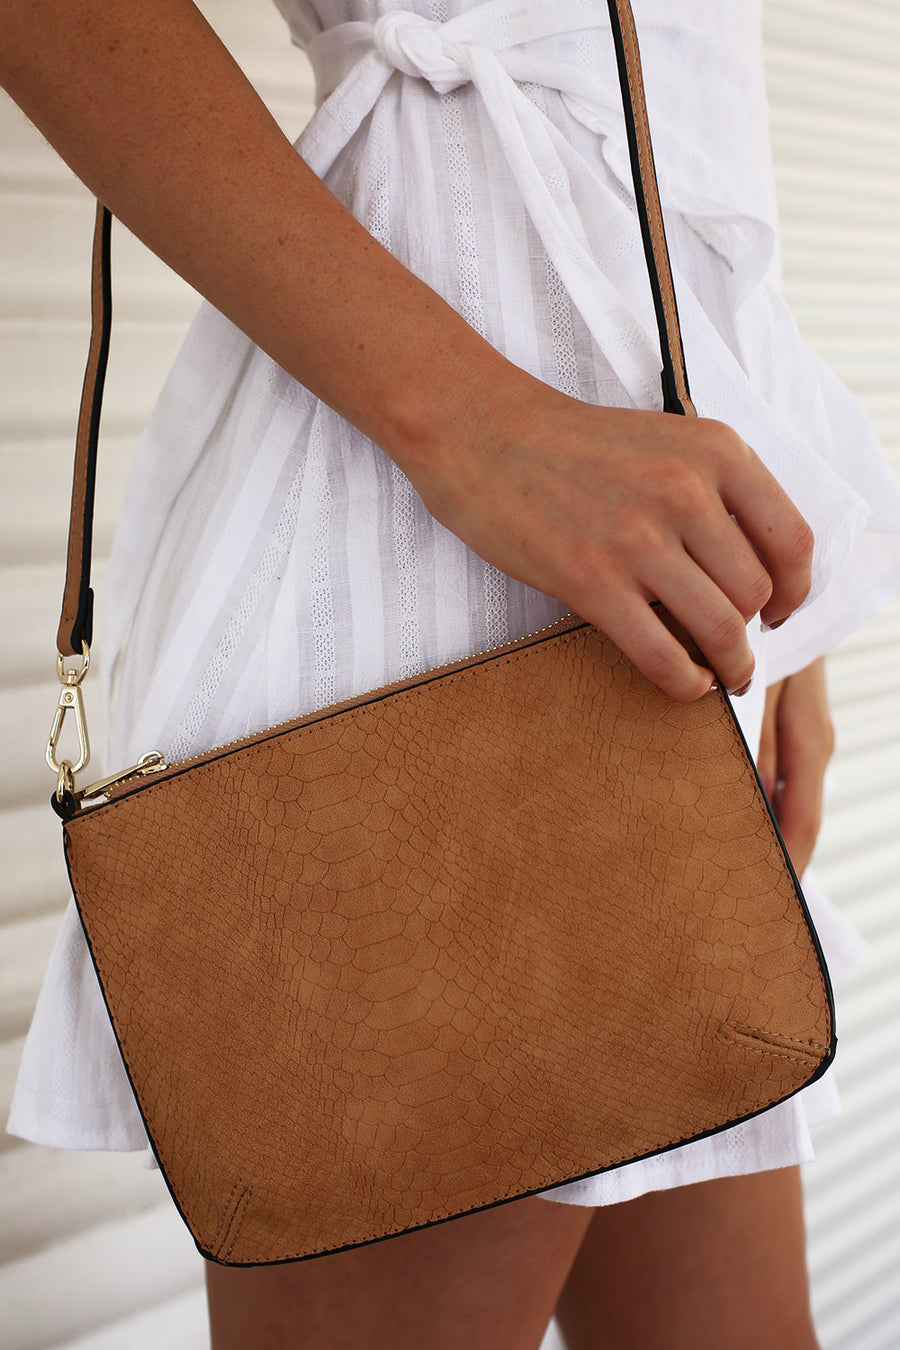 Brooklyn Bag in Caramel